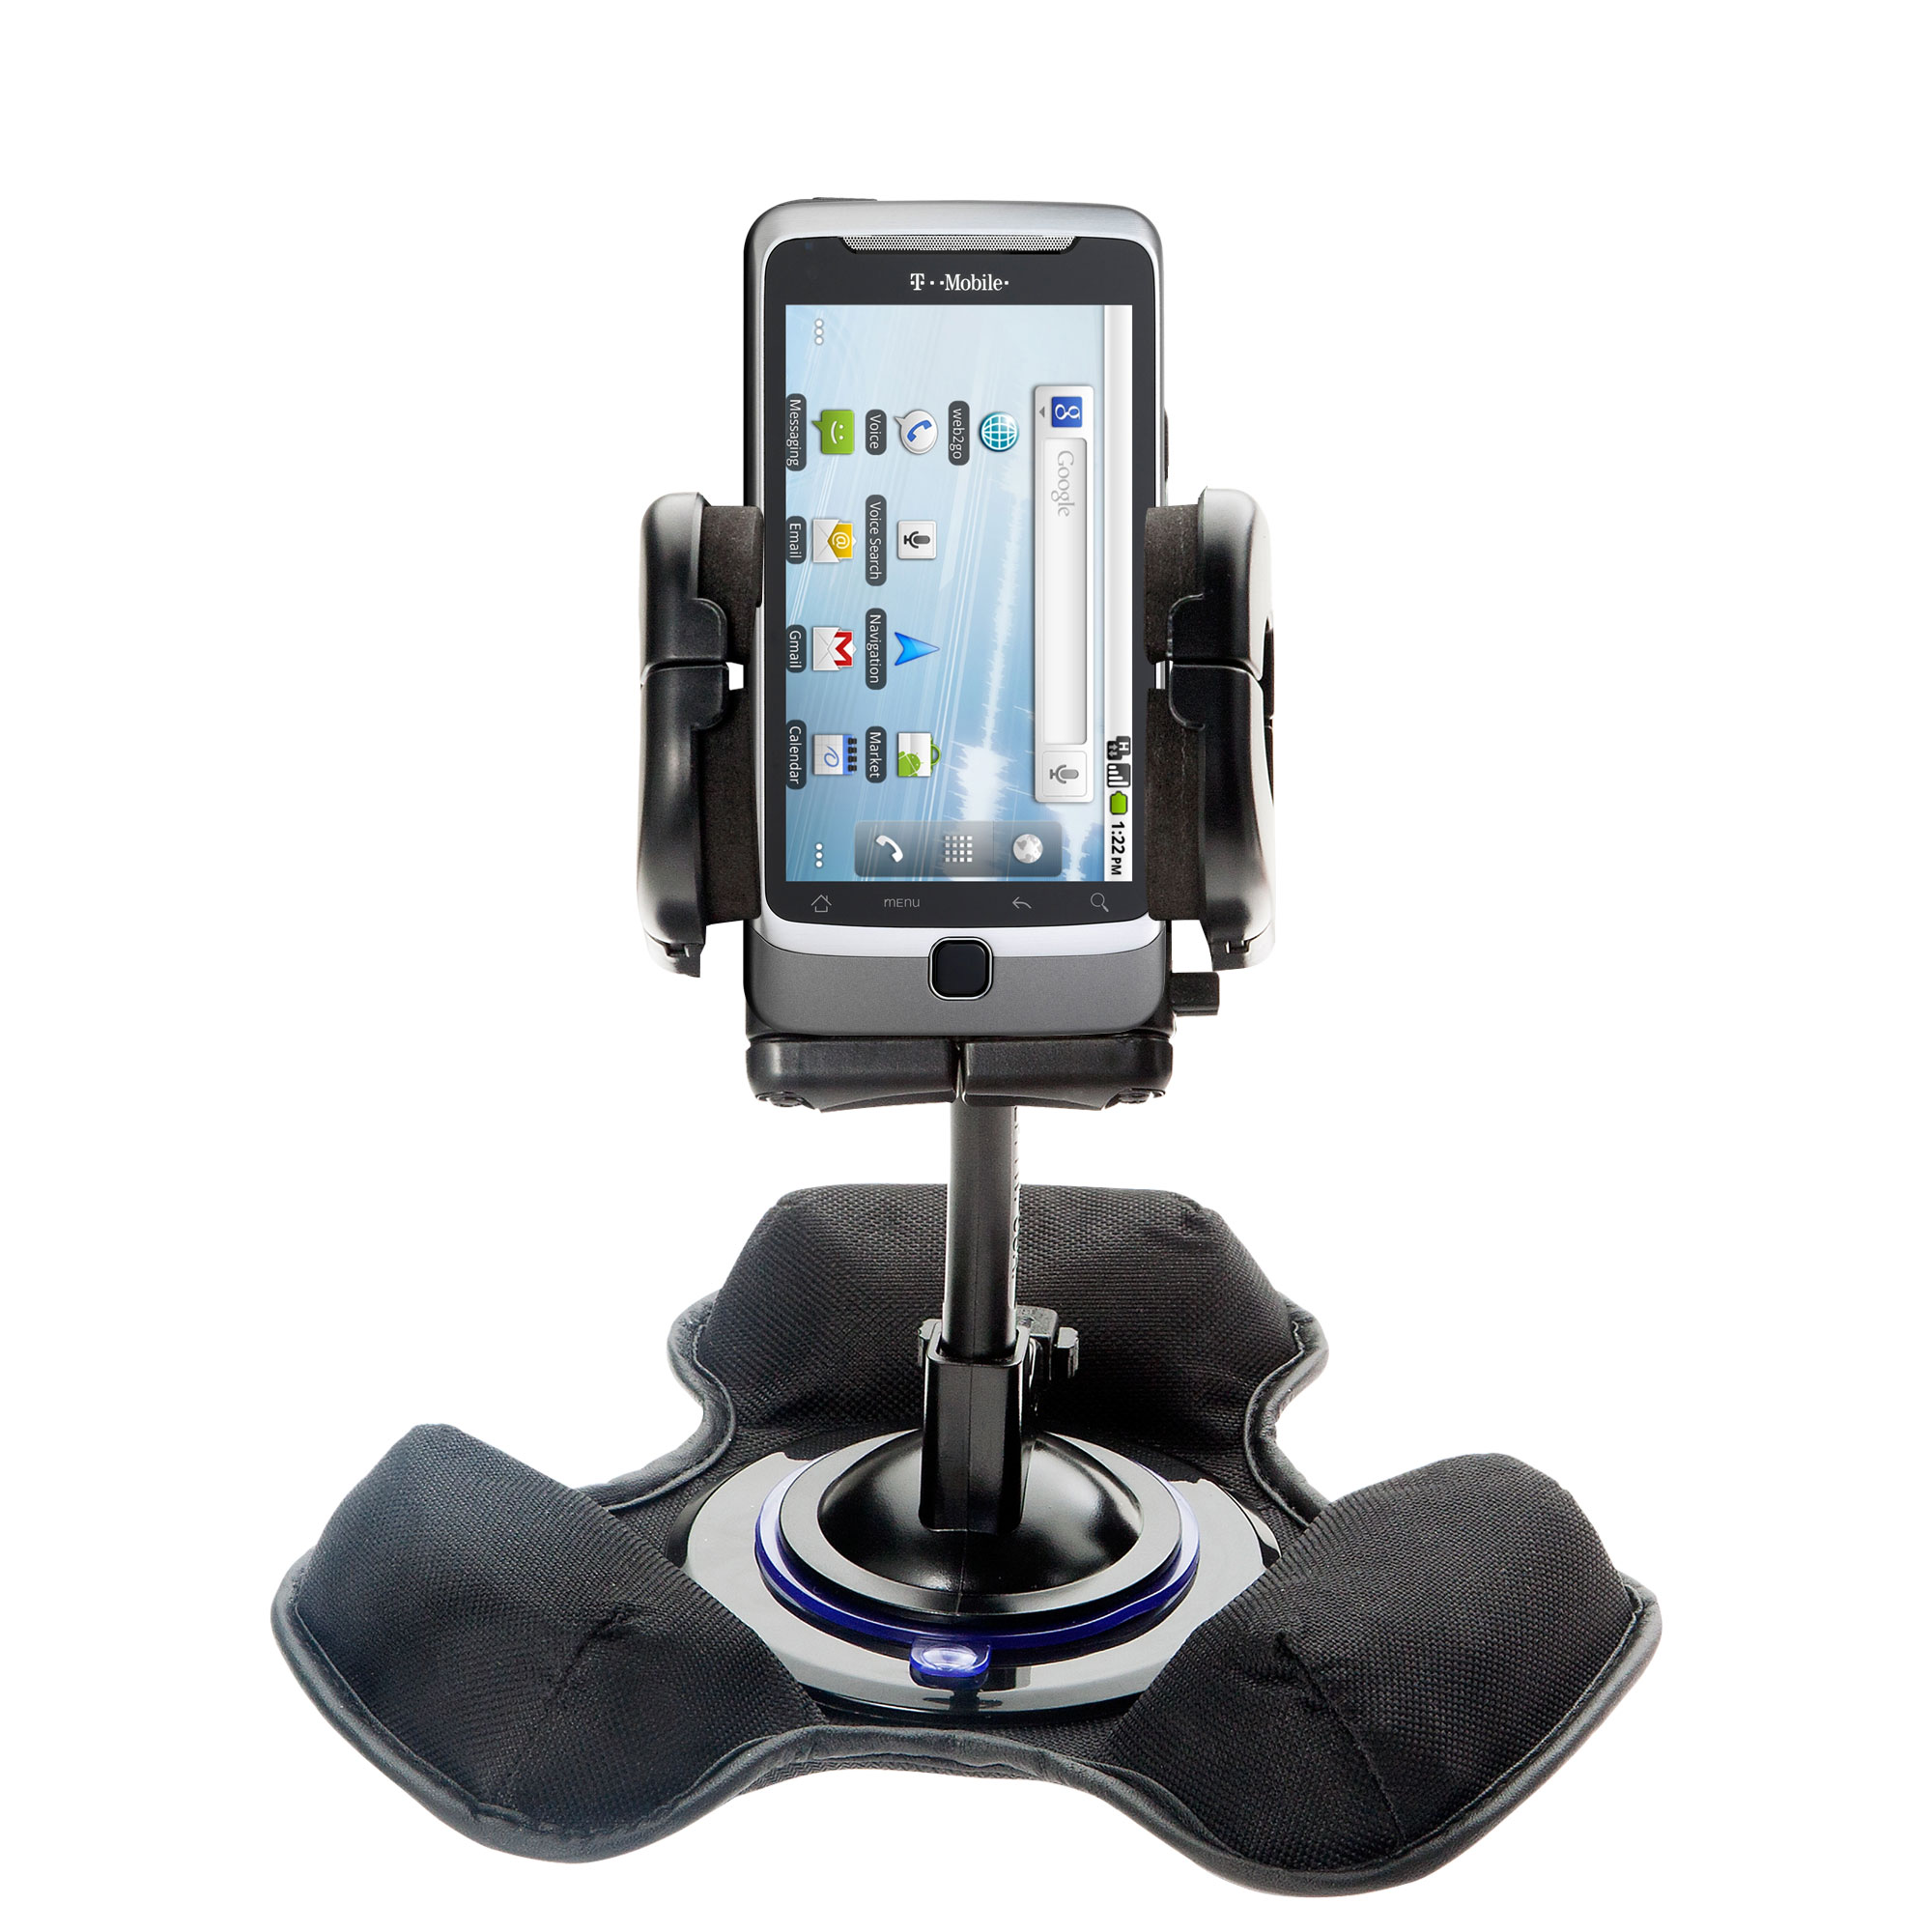 Car / Truck Vehicle Holder Mounting System for T-Mobile G2 Includes Unique Flexible Windshield Suction and Universal Dashboard Mount Options